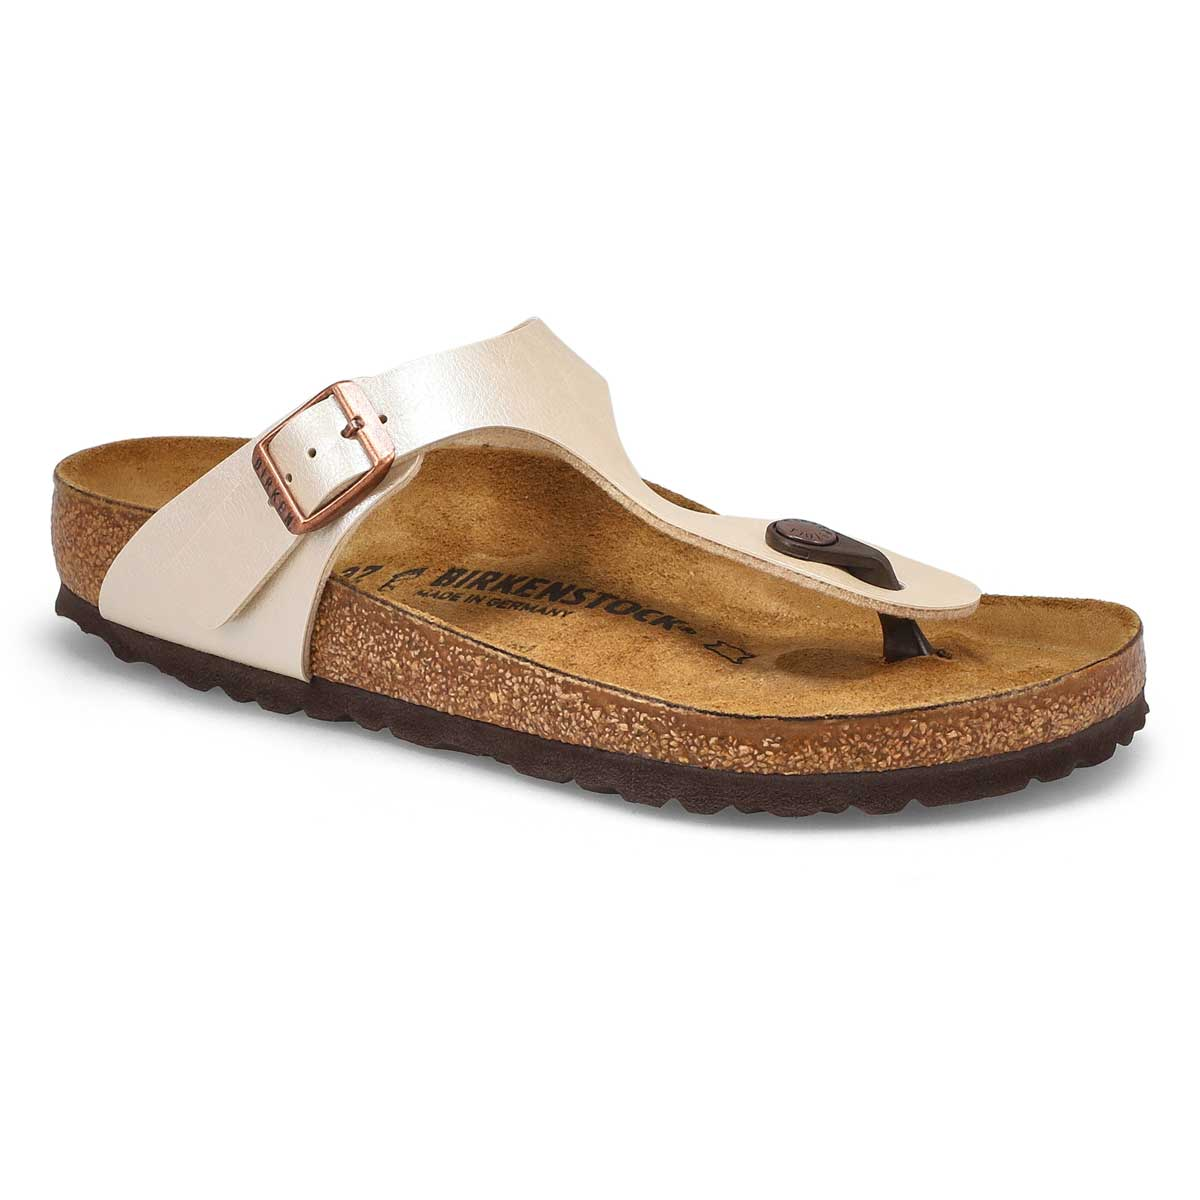 Women's GIZEH pearl white thong sandals